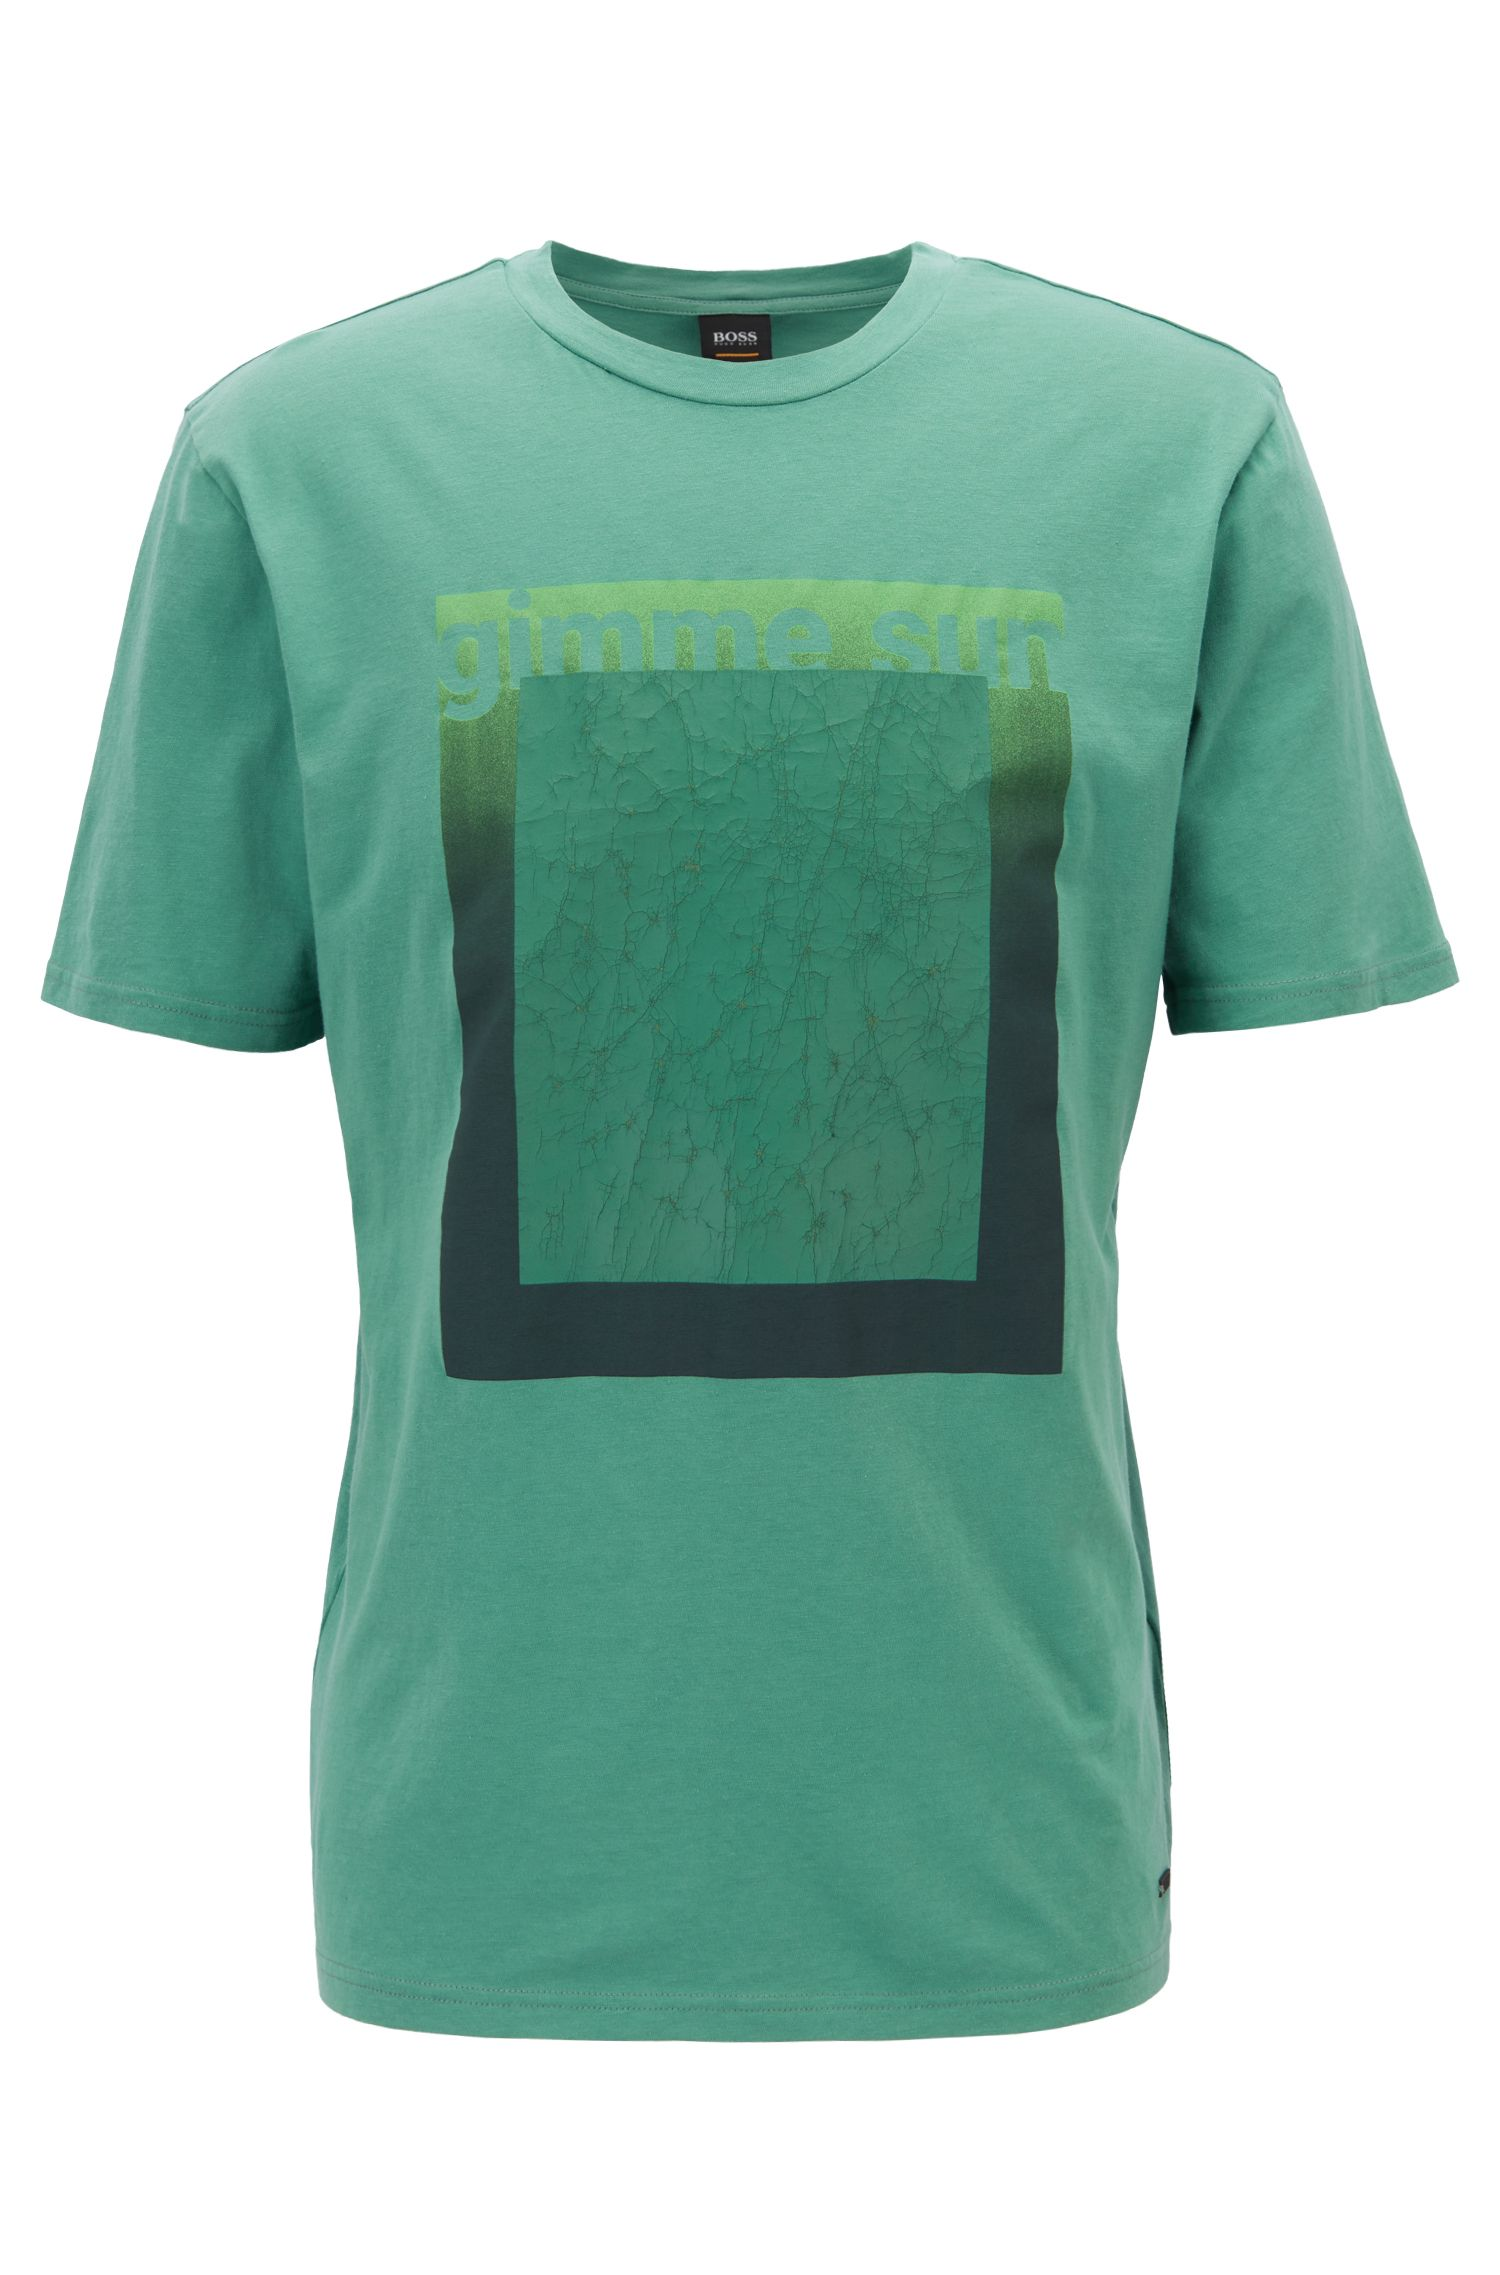 Relaxed-fit T-shirt in eco-friendly recot²® cotton, Green